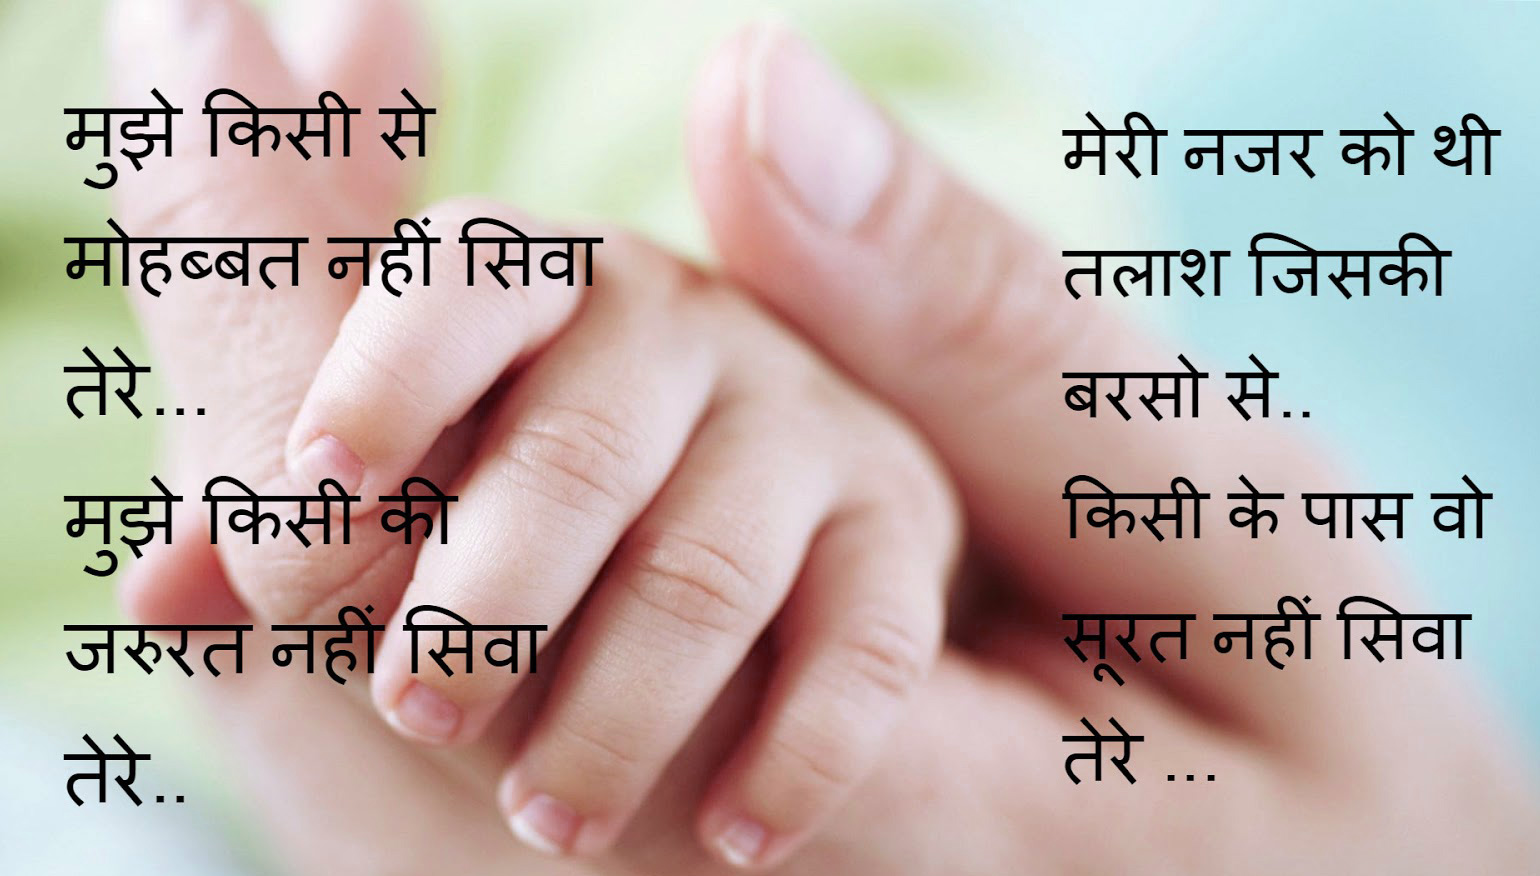 Shayari Wallpaper 9